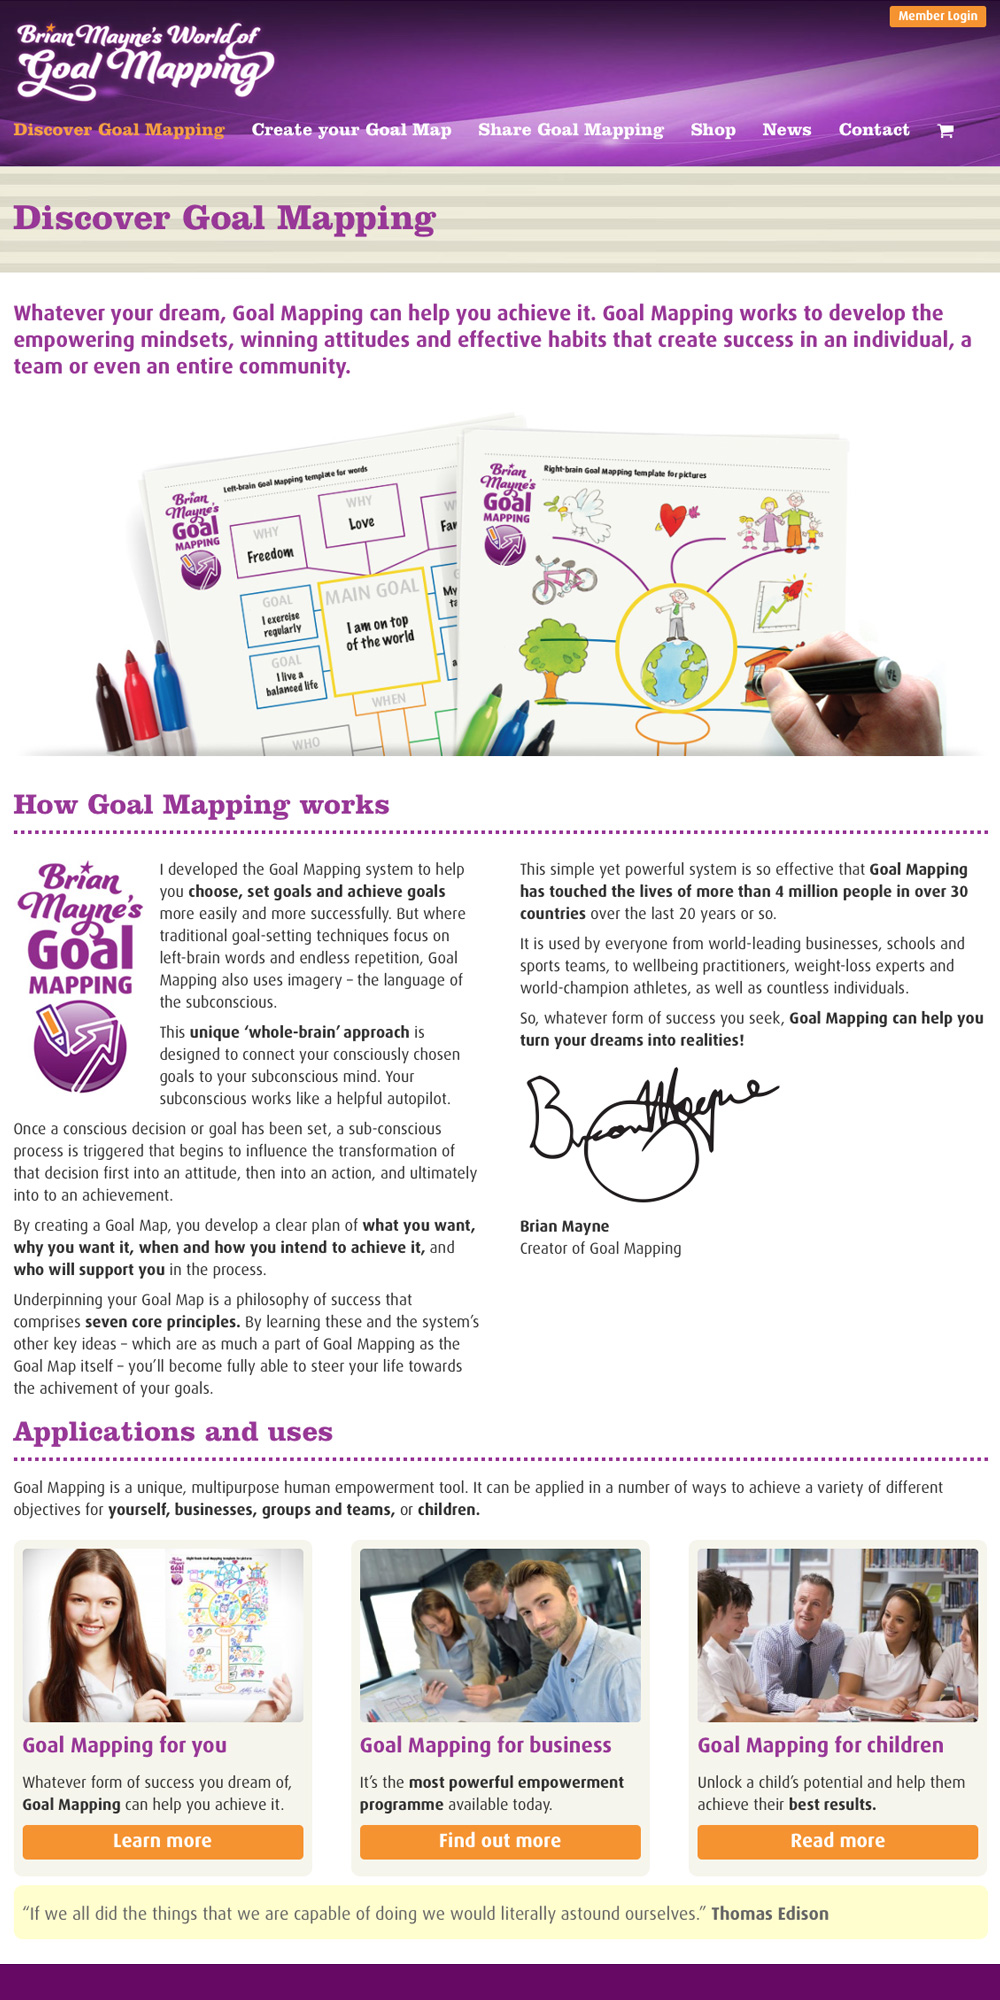 Brian Mayne's World of Goal Mapping website